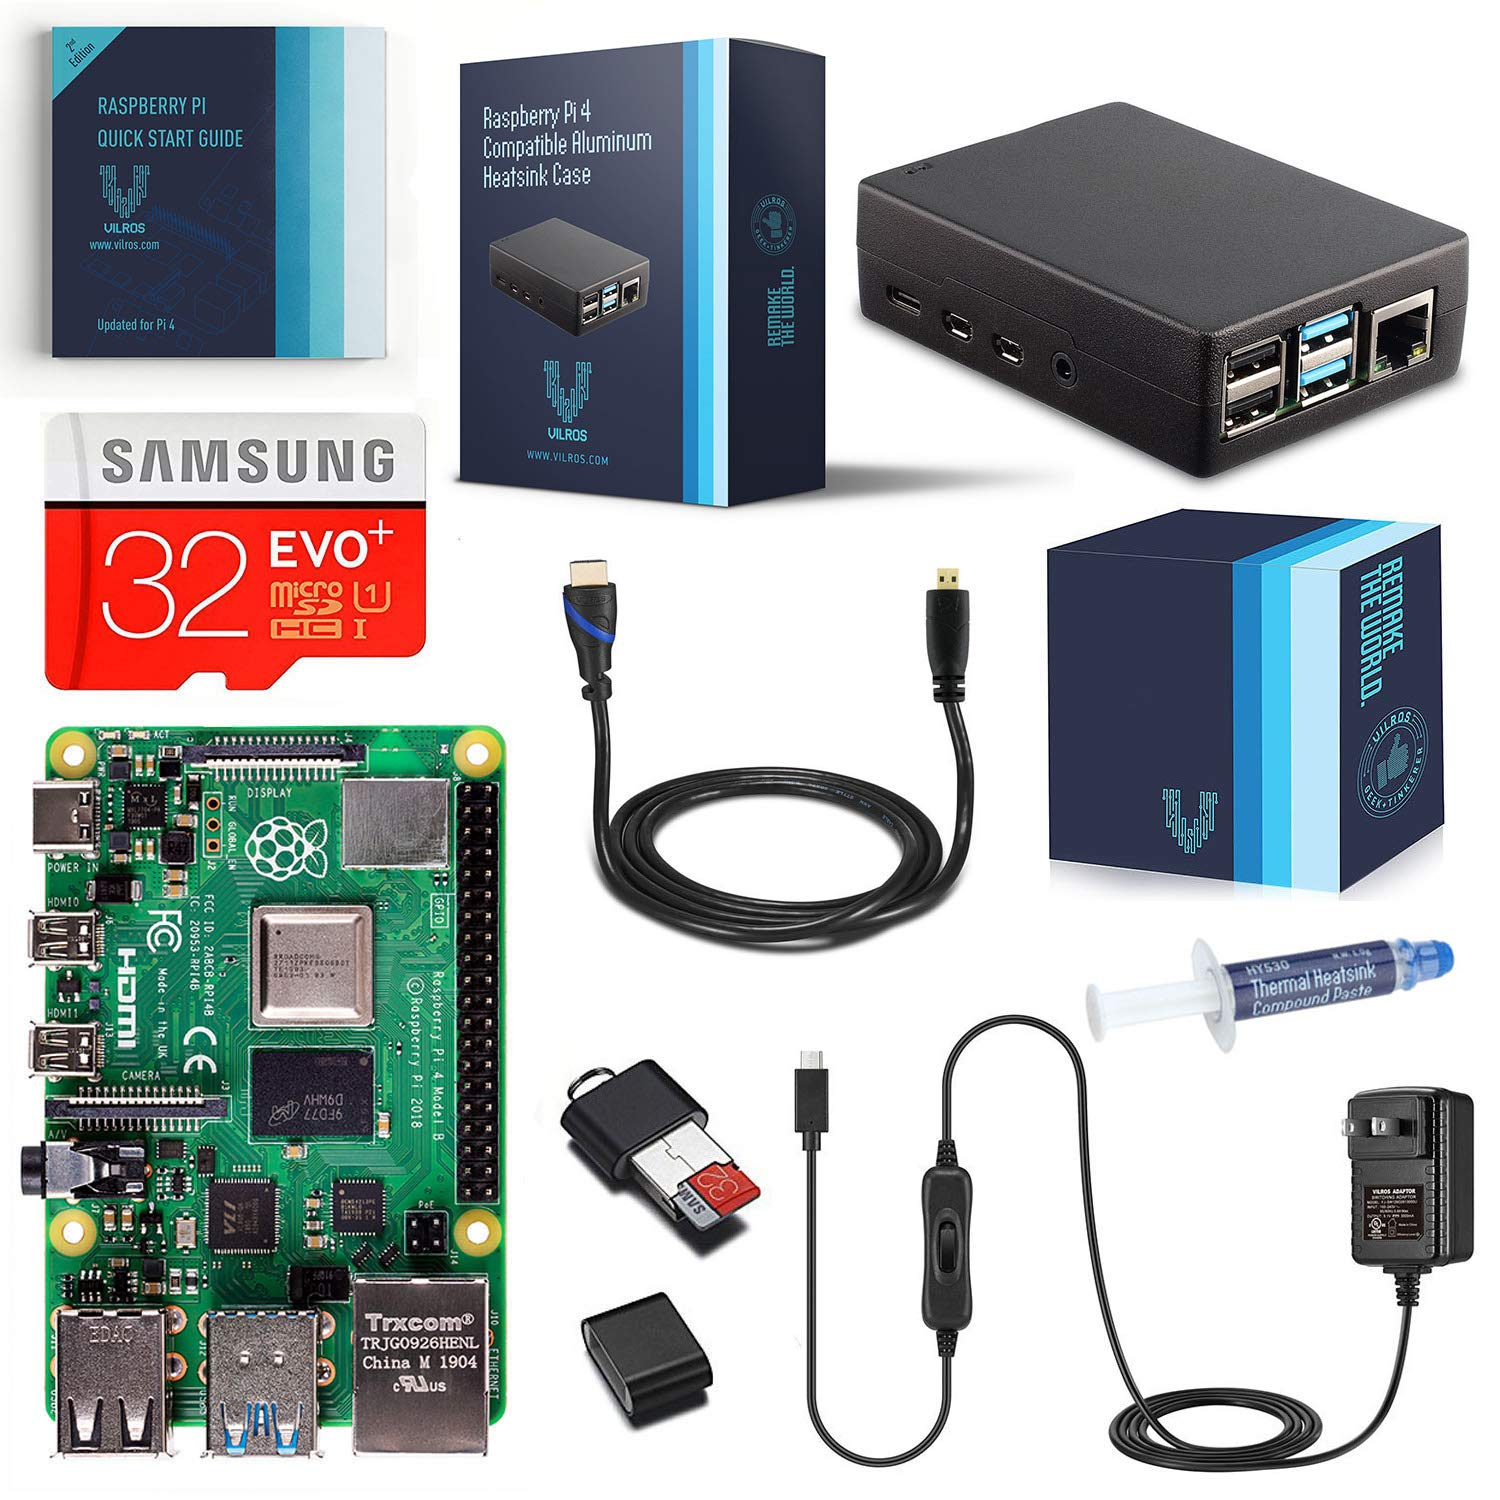 Vilros Raspberry Pi 4-4GB RAM- Complete Starter Kit with Heavy-Duty Self-Cooling Aluminum Alloy Case by Vilros